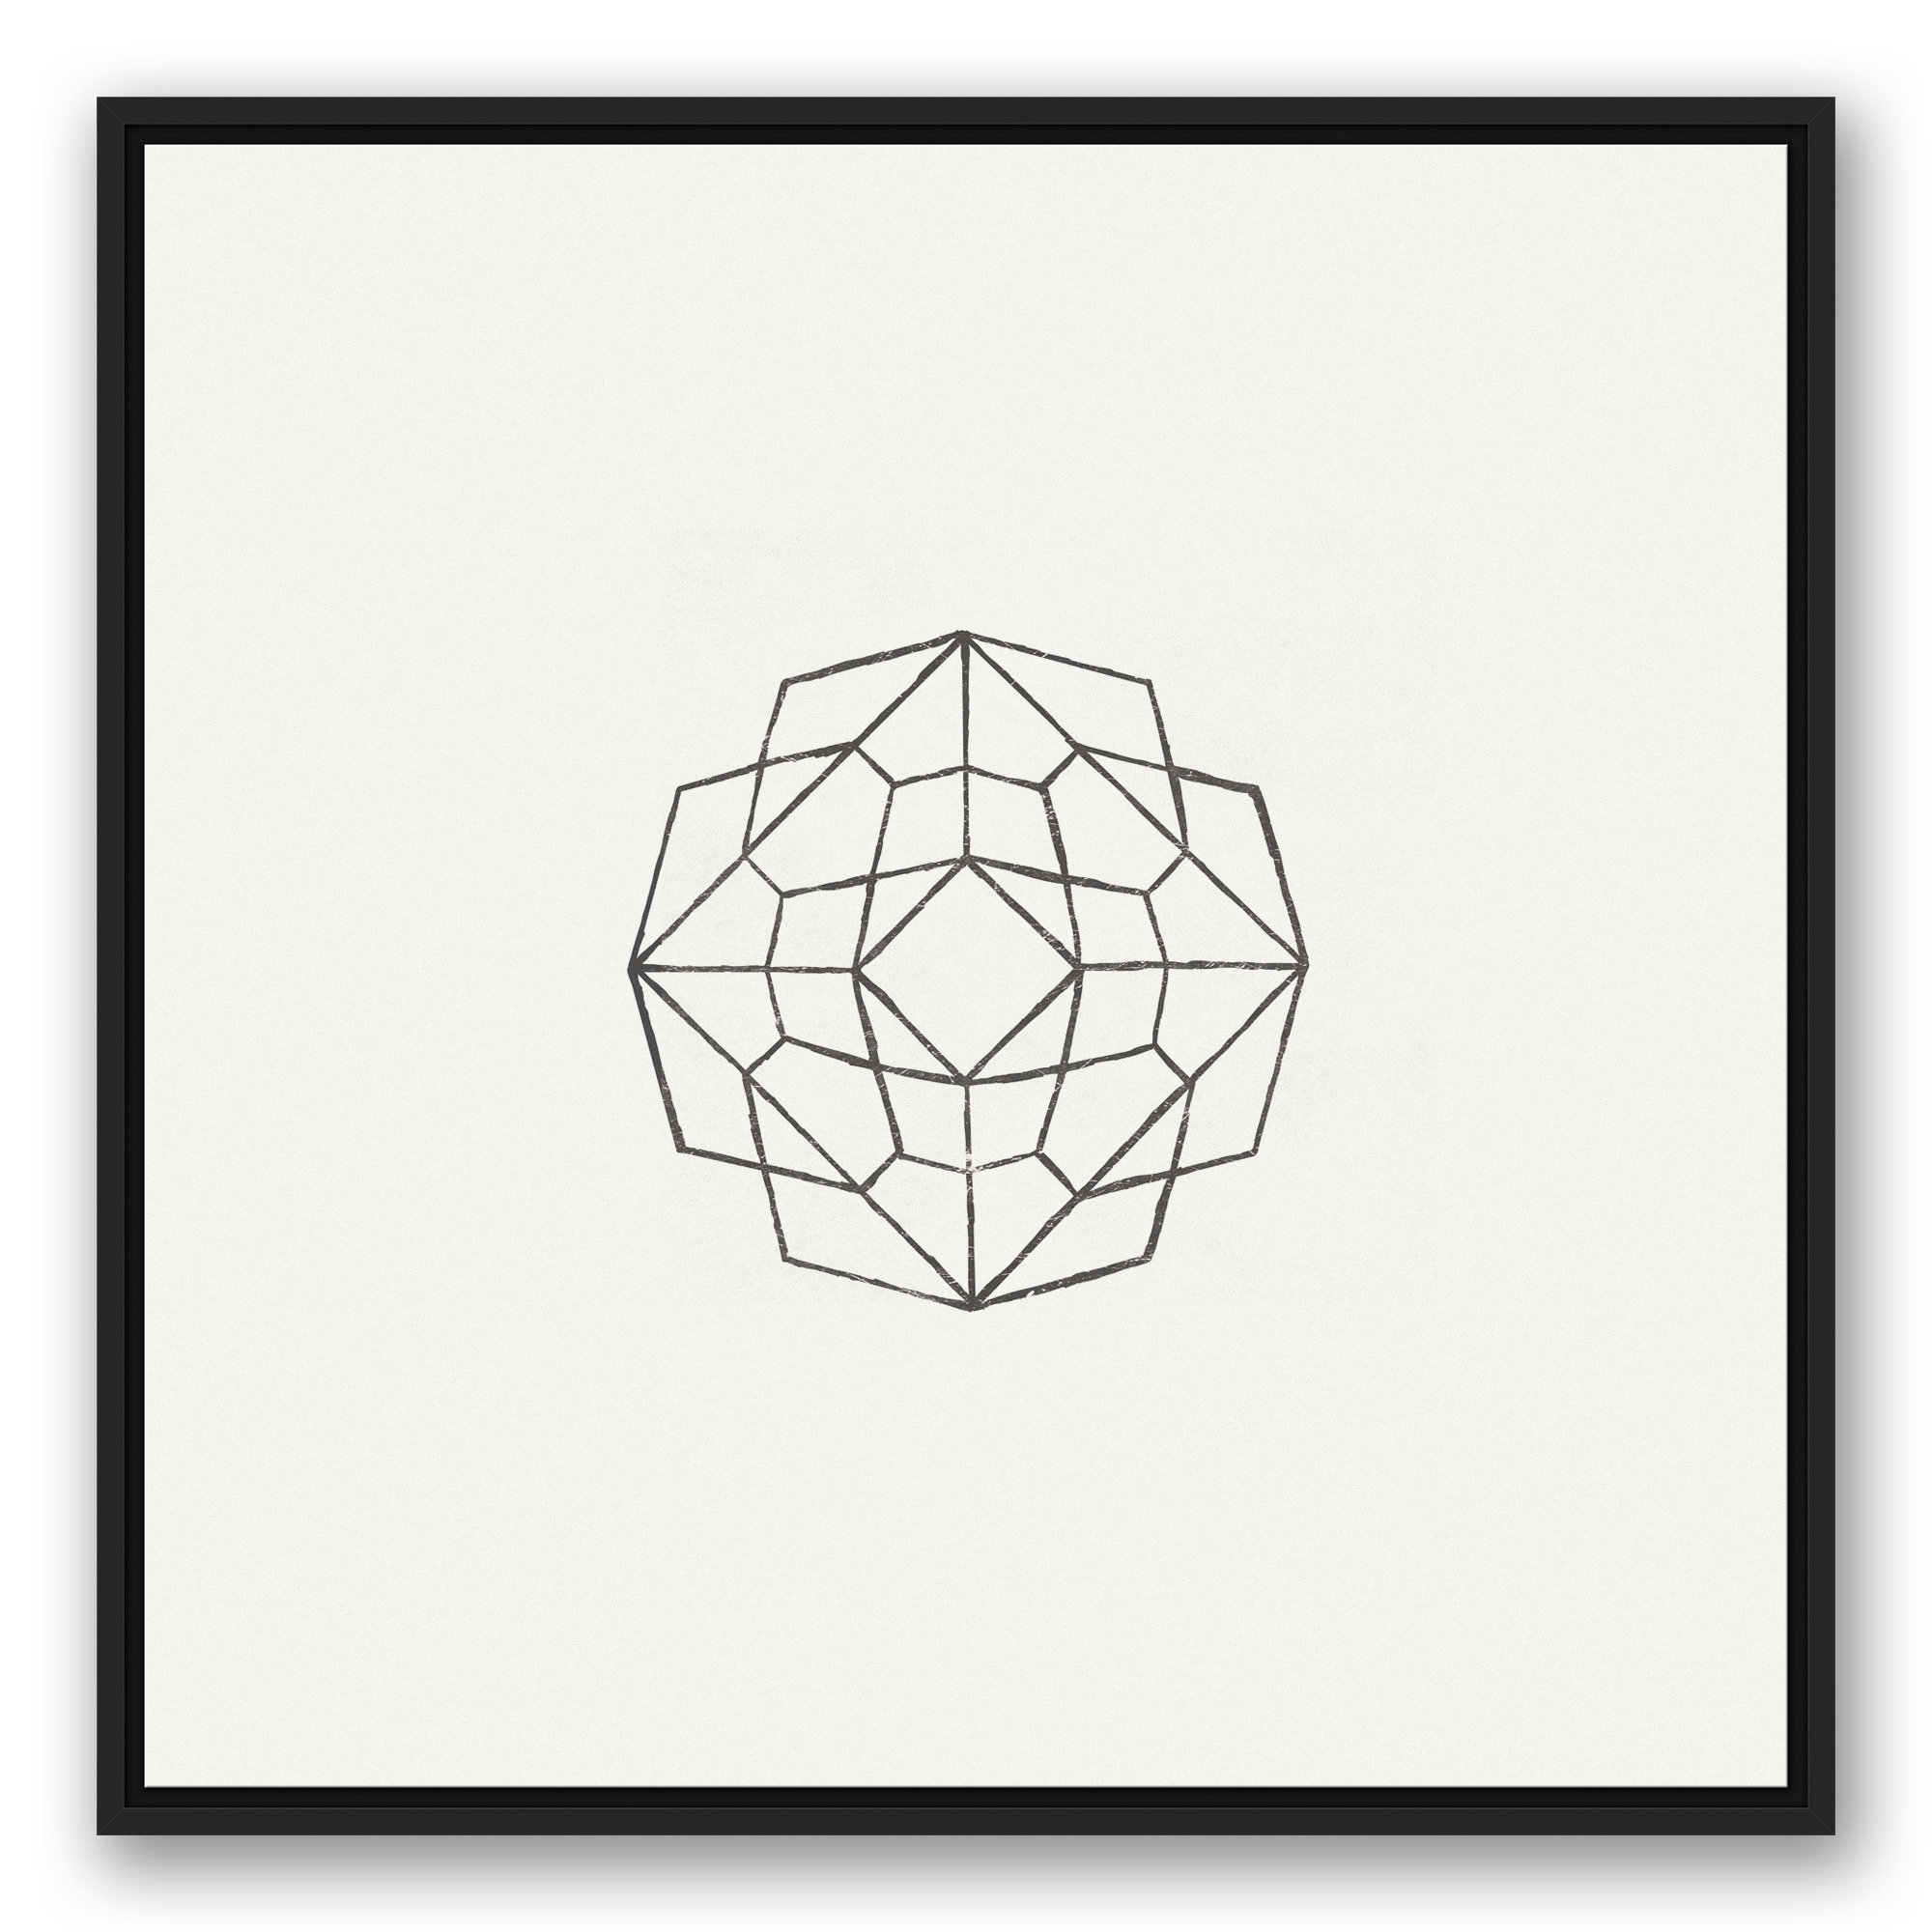 Wrought Studio 'geometric Sketch' Framed Graphic Art Print On Canvas Inside 2019 Rings Wall Decor By Wrought Studio (View 10 of 20)